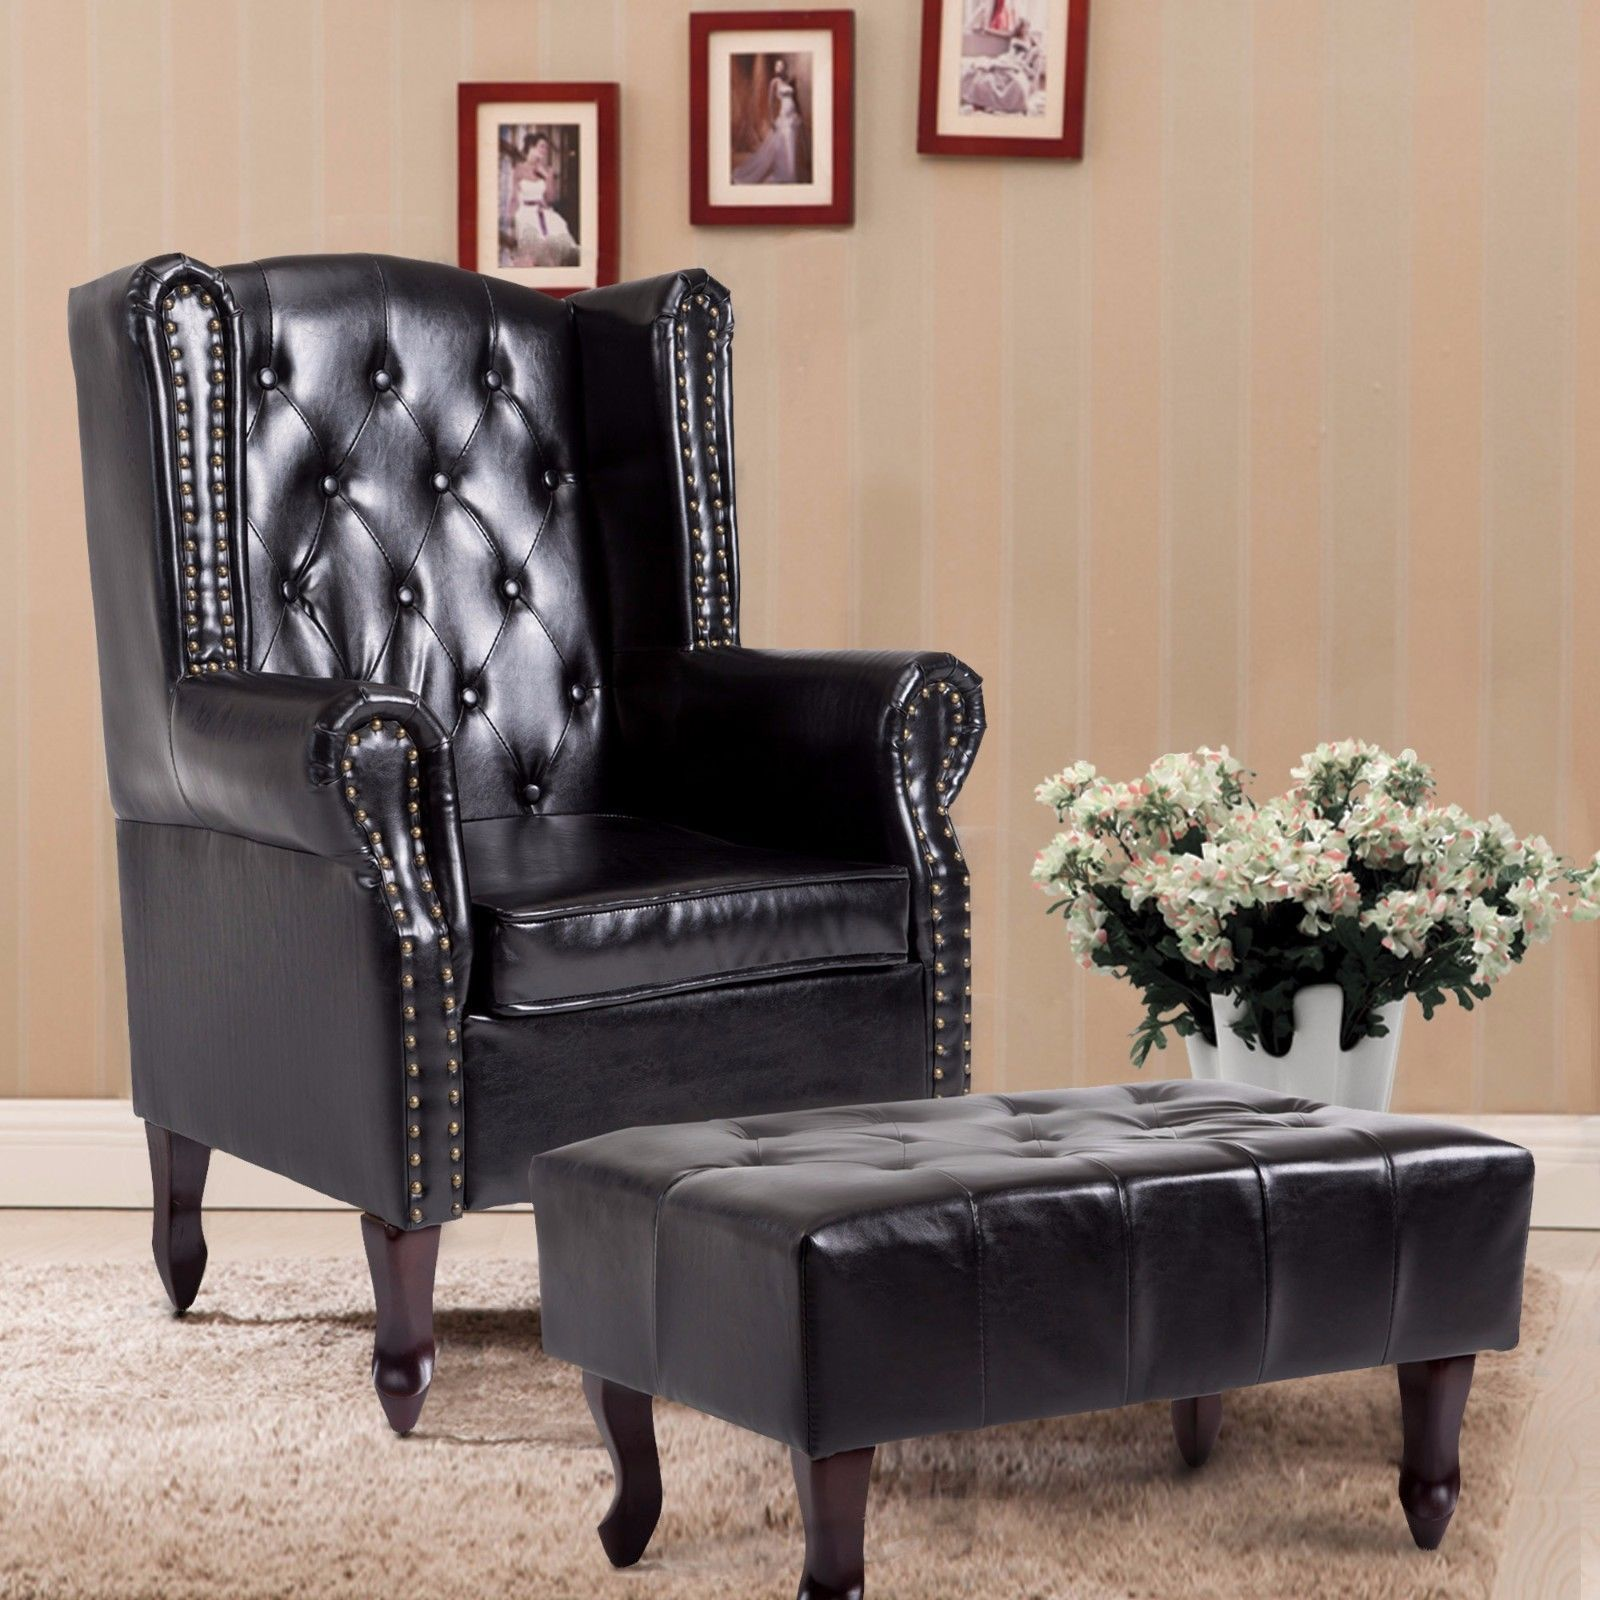 Cloud Mountain Tufted Accent Chair and Ottoman Black Leather Club Classic Couch